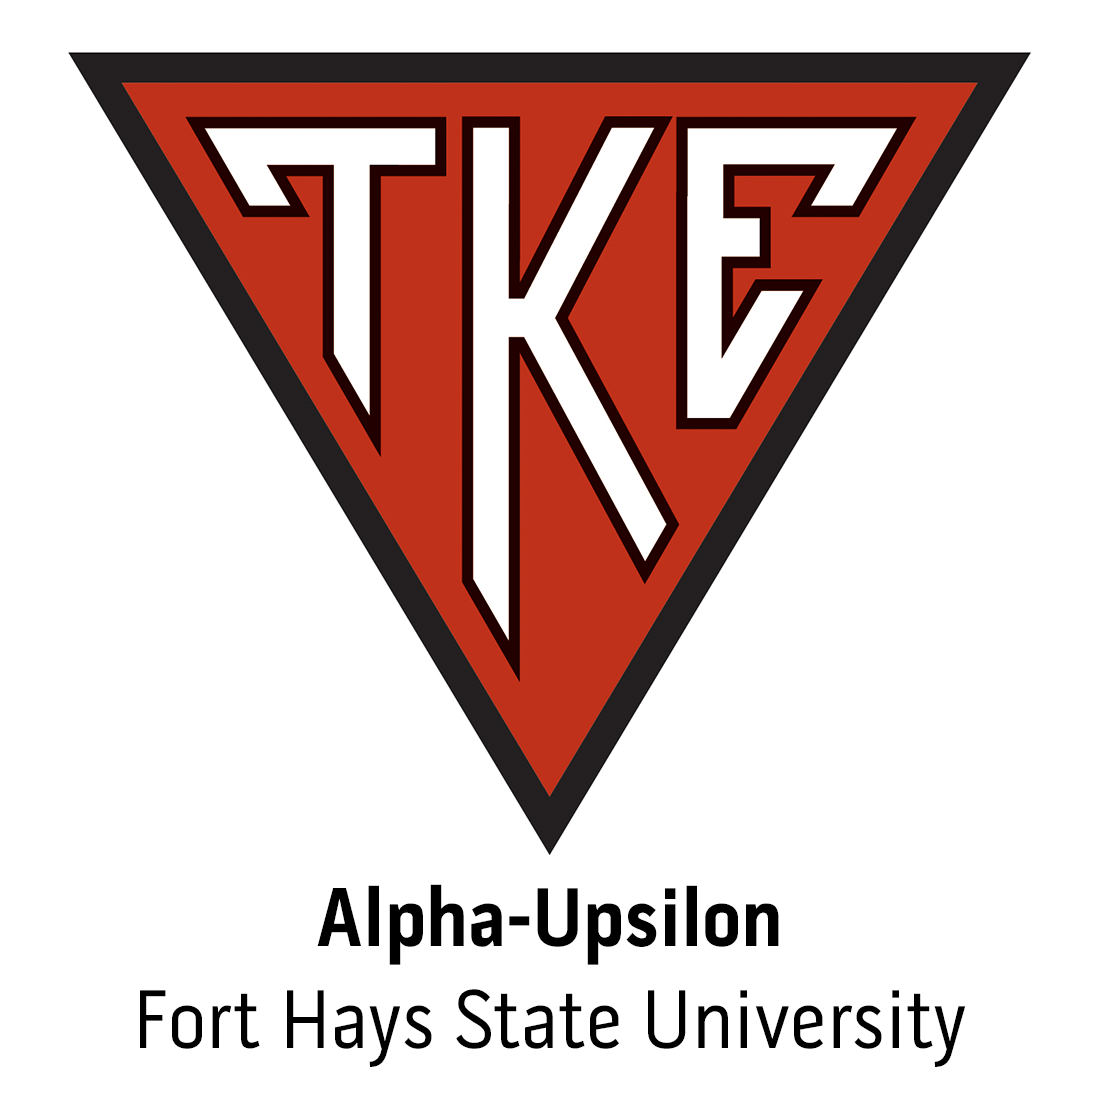 Alpha-Upsilon Chapter at Fort Hays State University